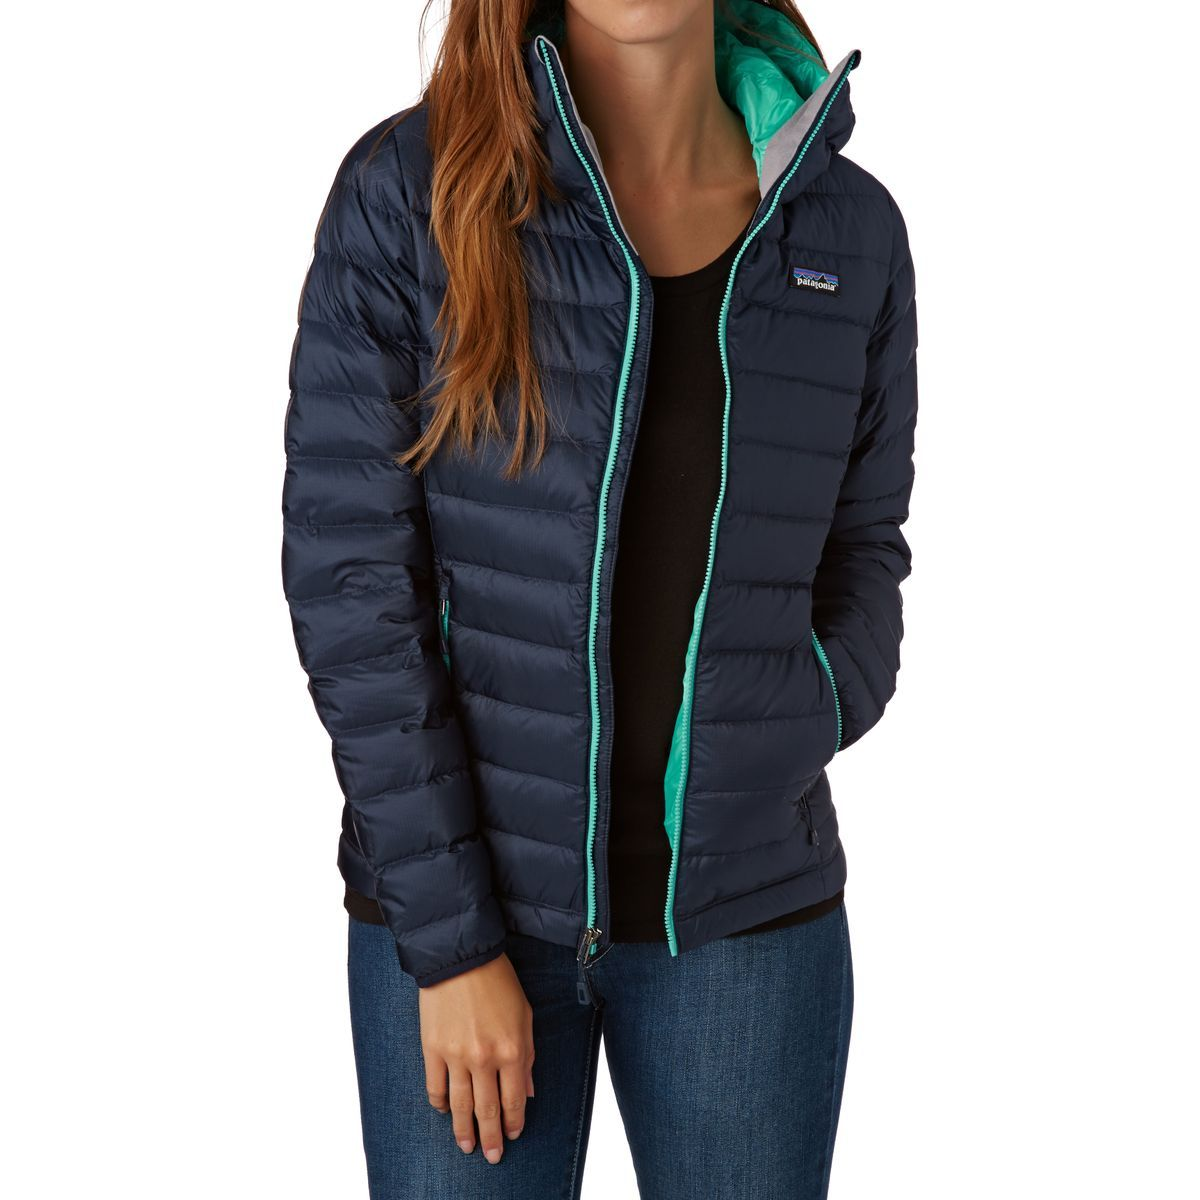 38c96858a21 Patagonia Women's Down Sweater Hooded Jacket - Navy Blue W/strait Blue